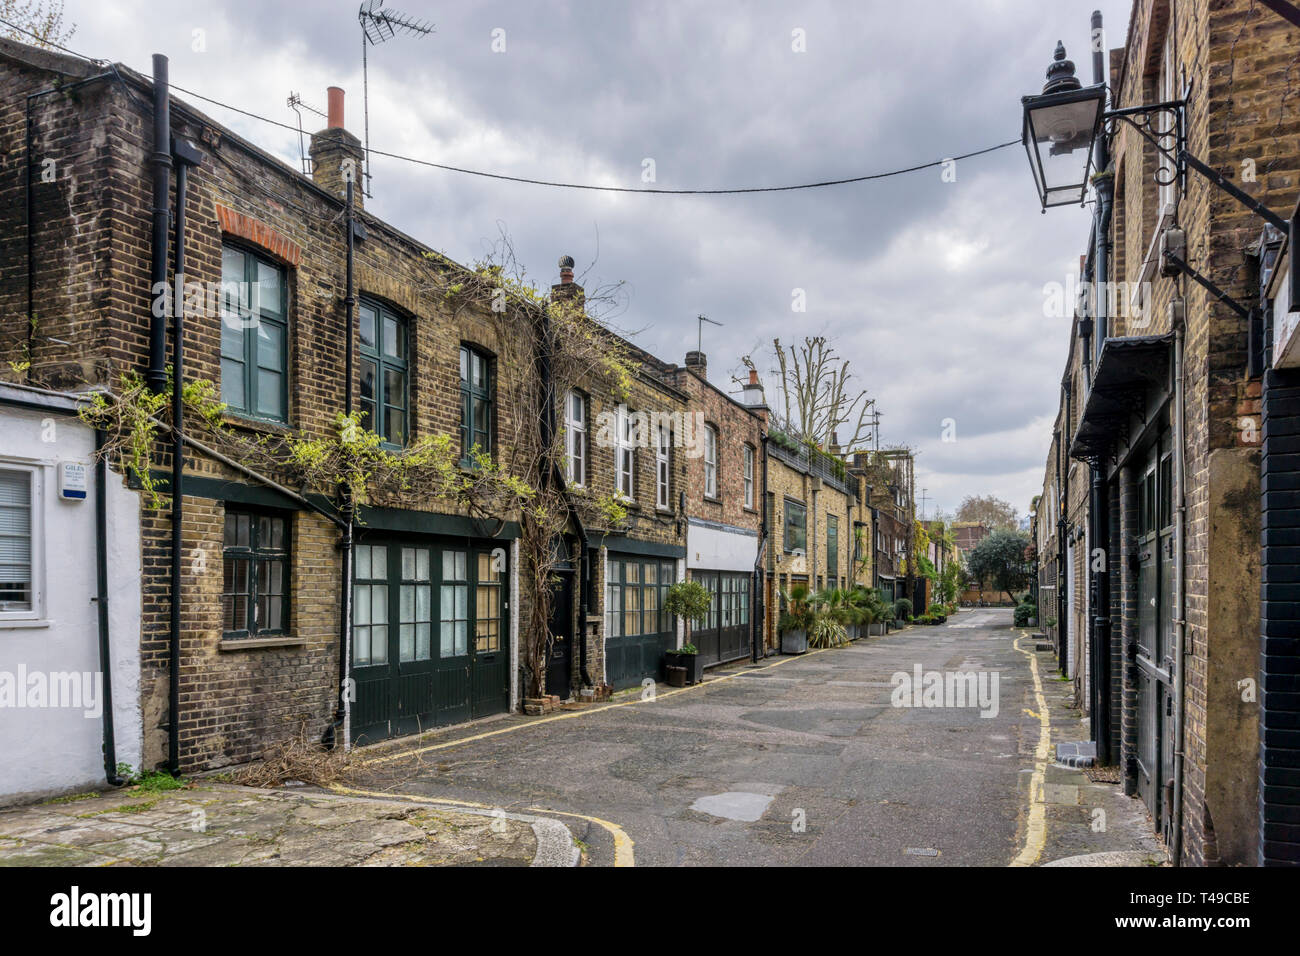 Doughty Mews is part of the Bloomsbury Conservation Area in central London. - Stock Image